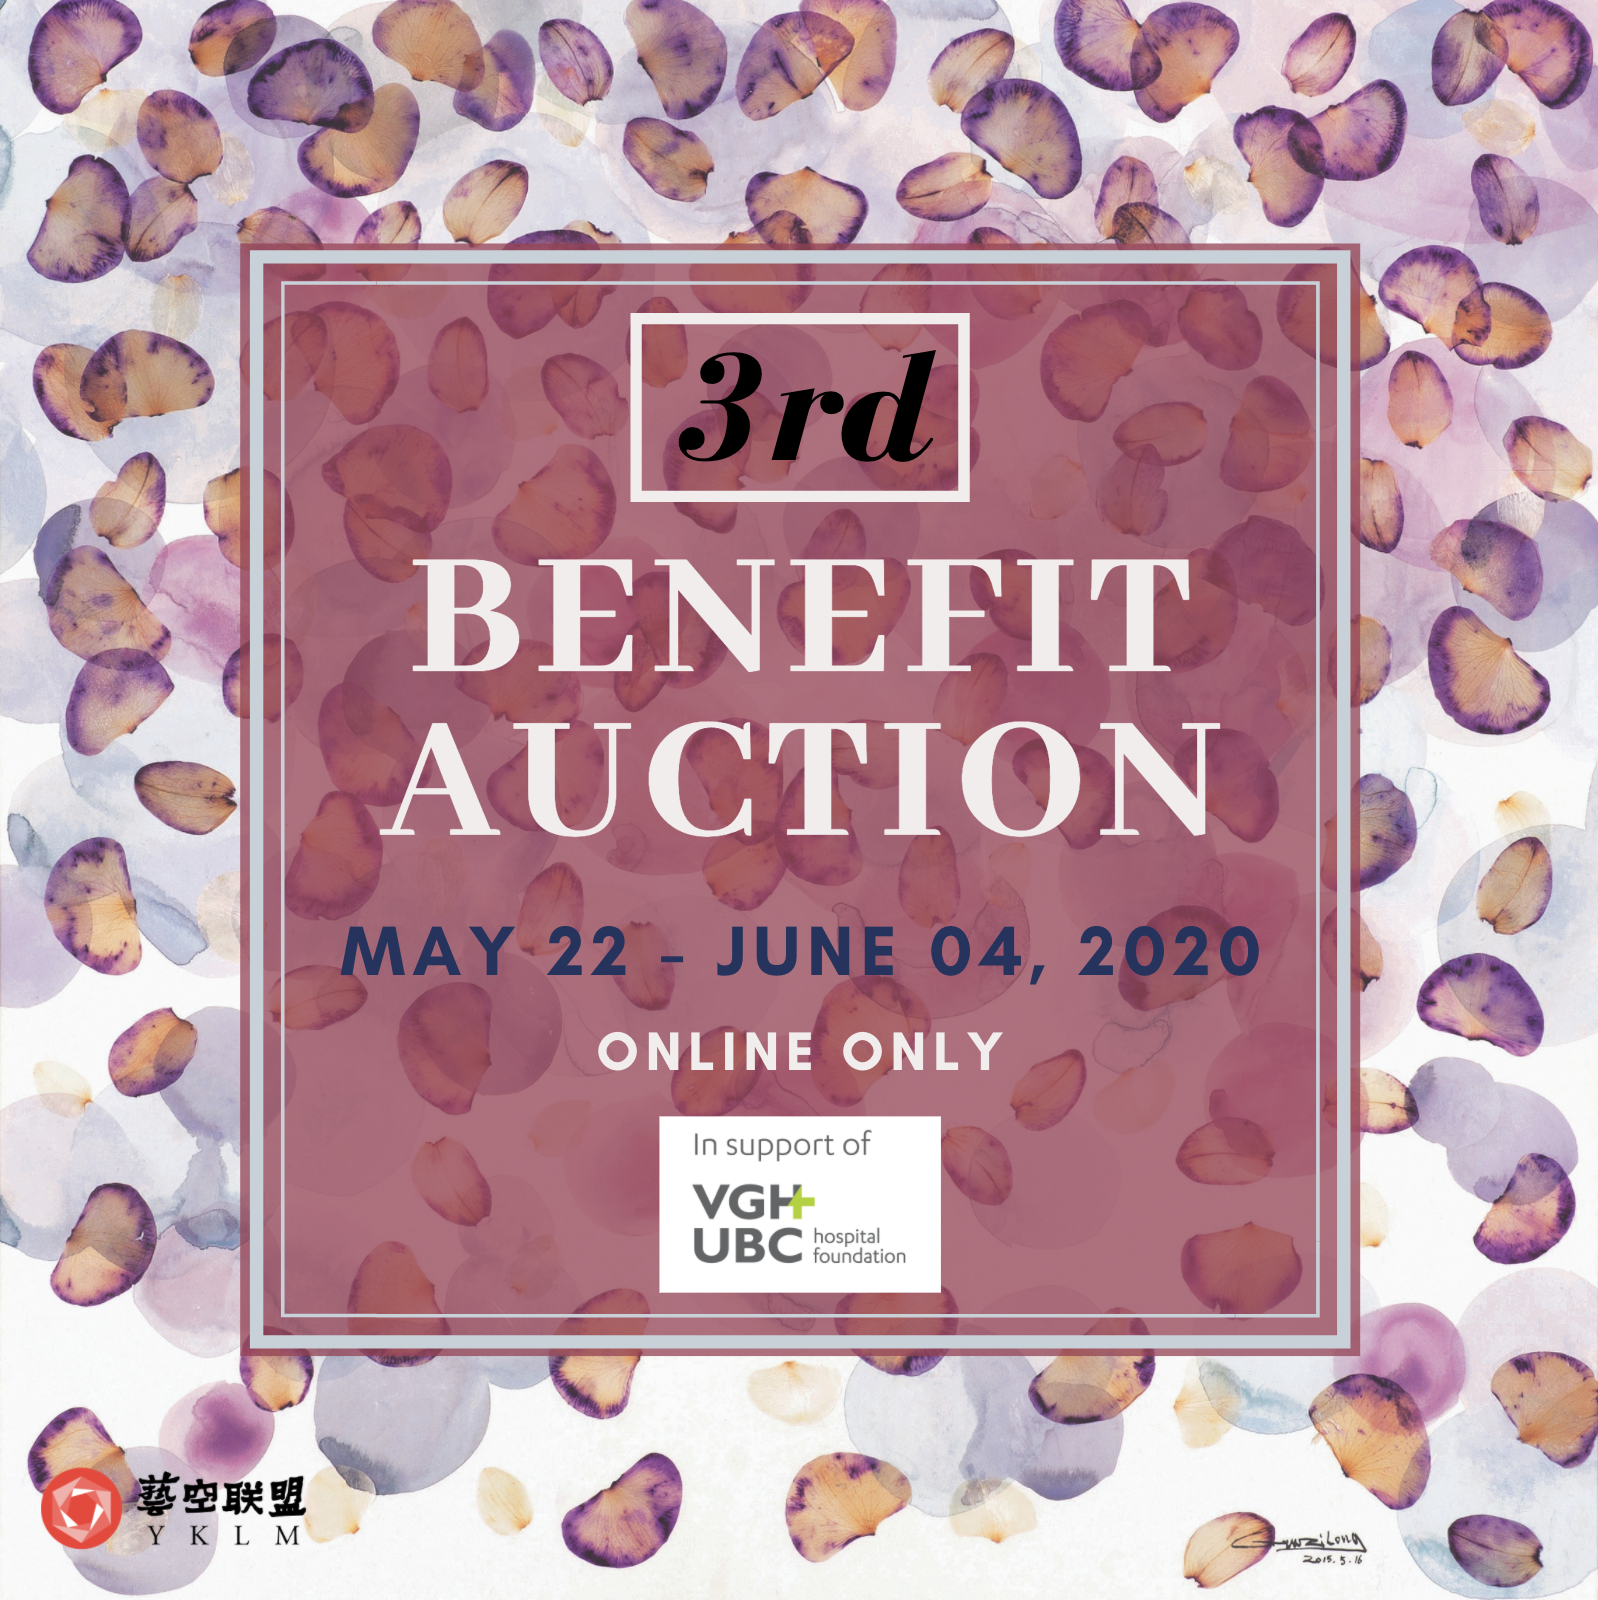 3rd benefit auction_vgh_yklm_online